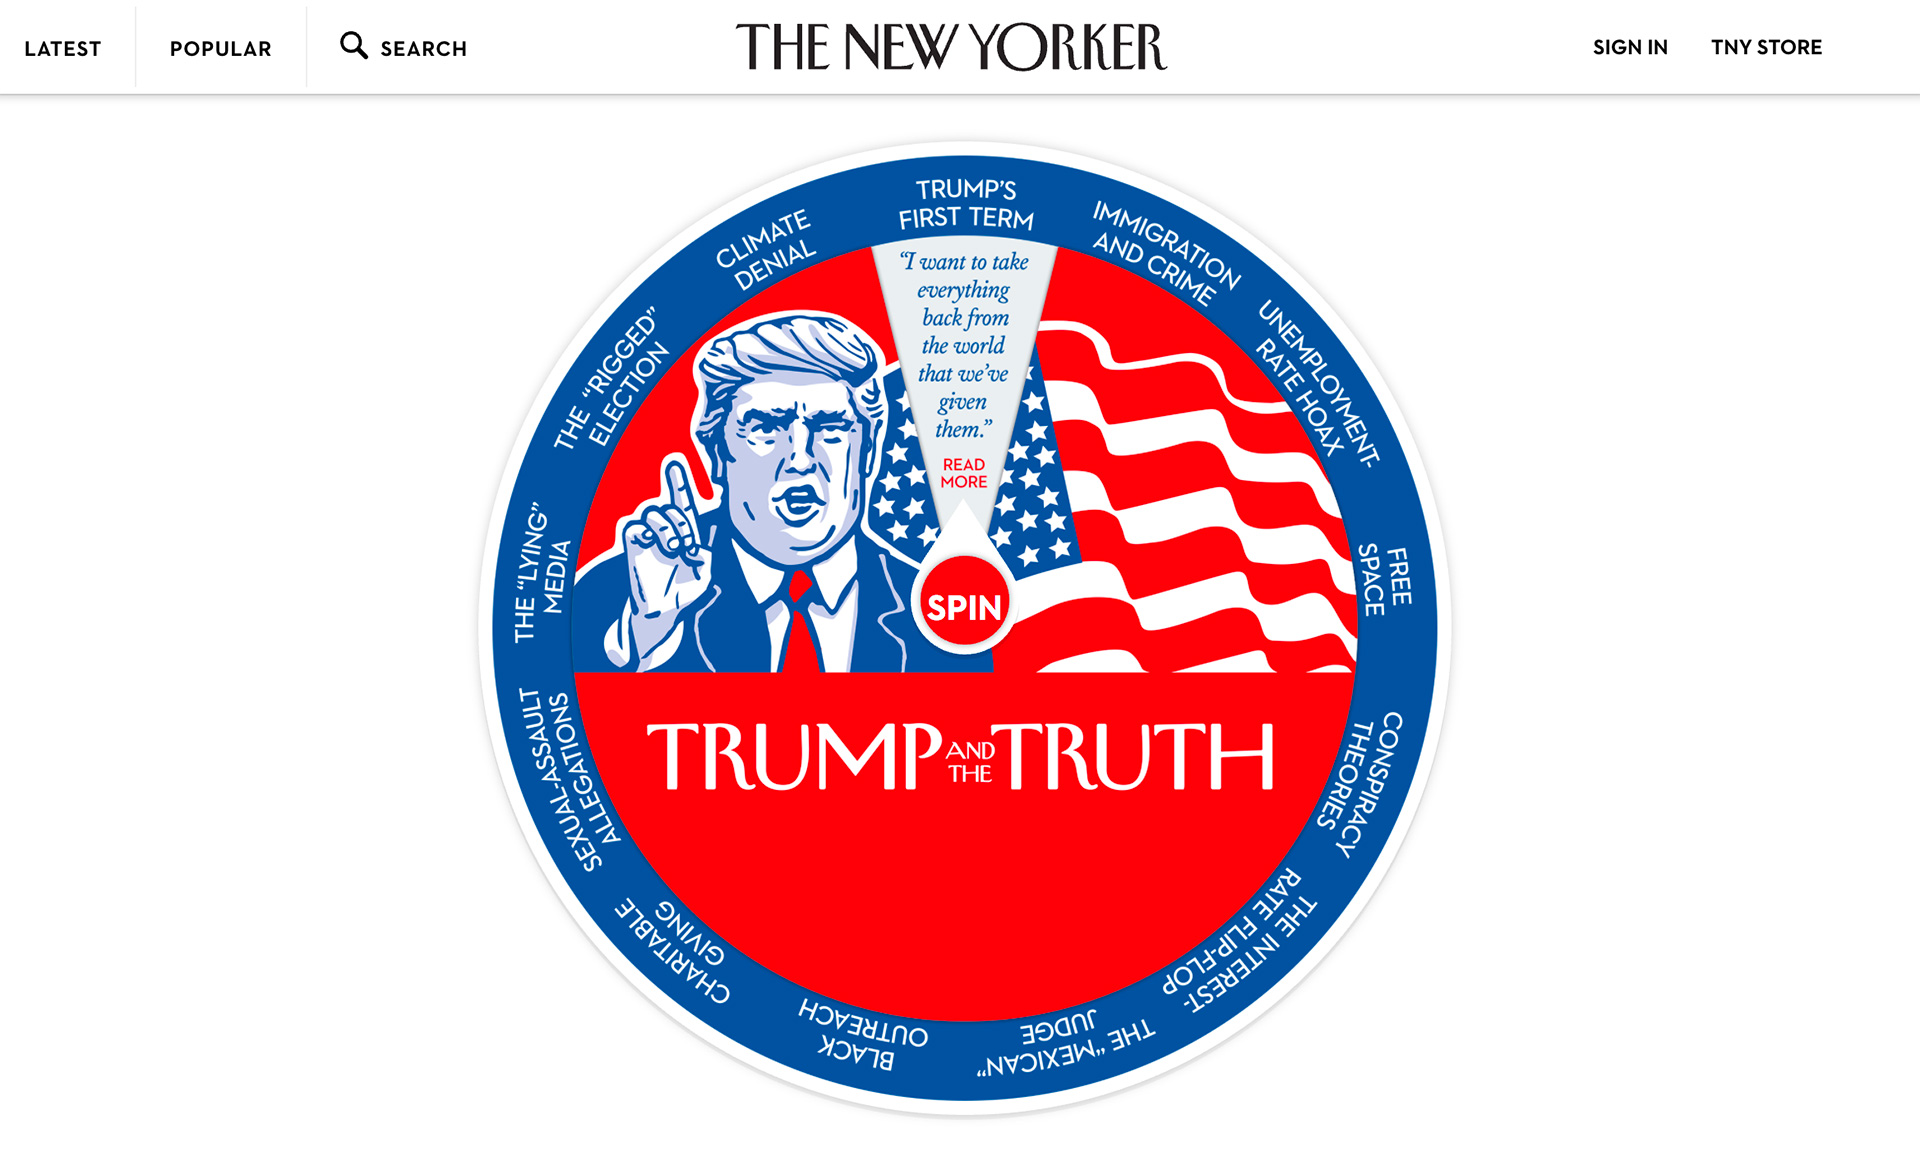 The New Yorker - Trump and the Truth